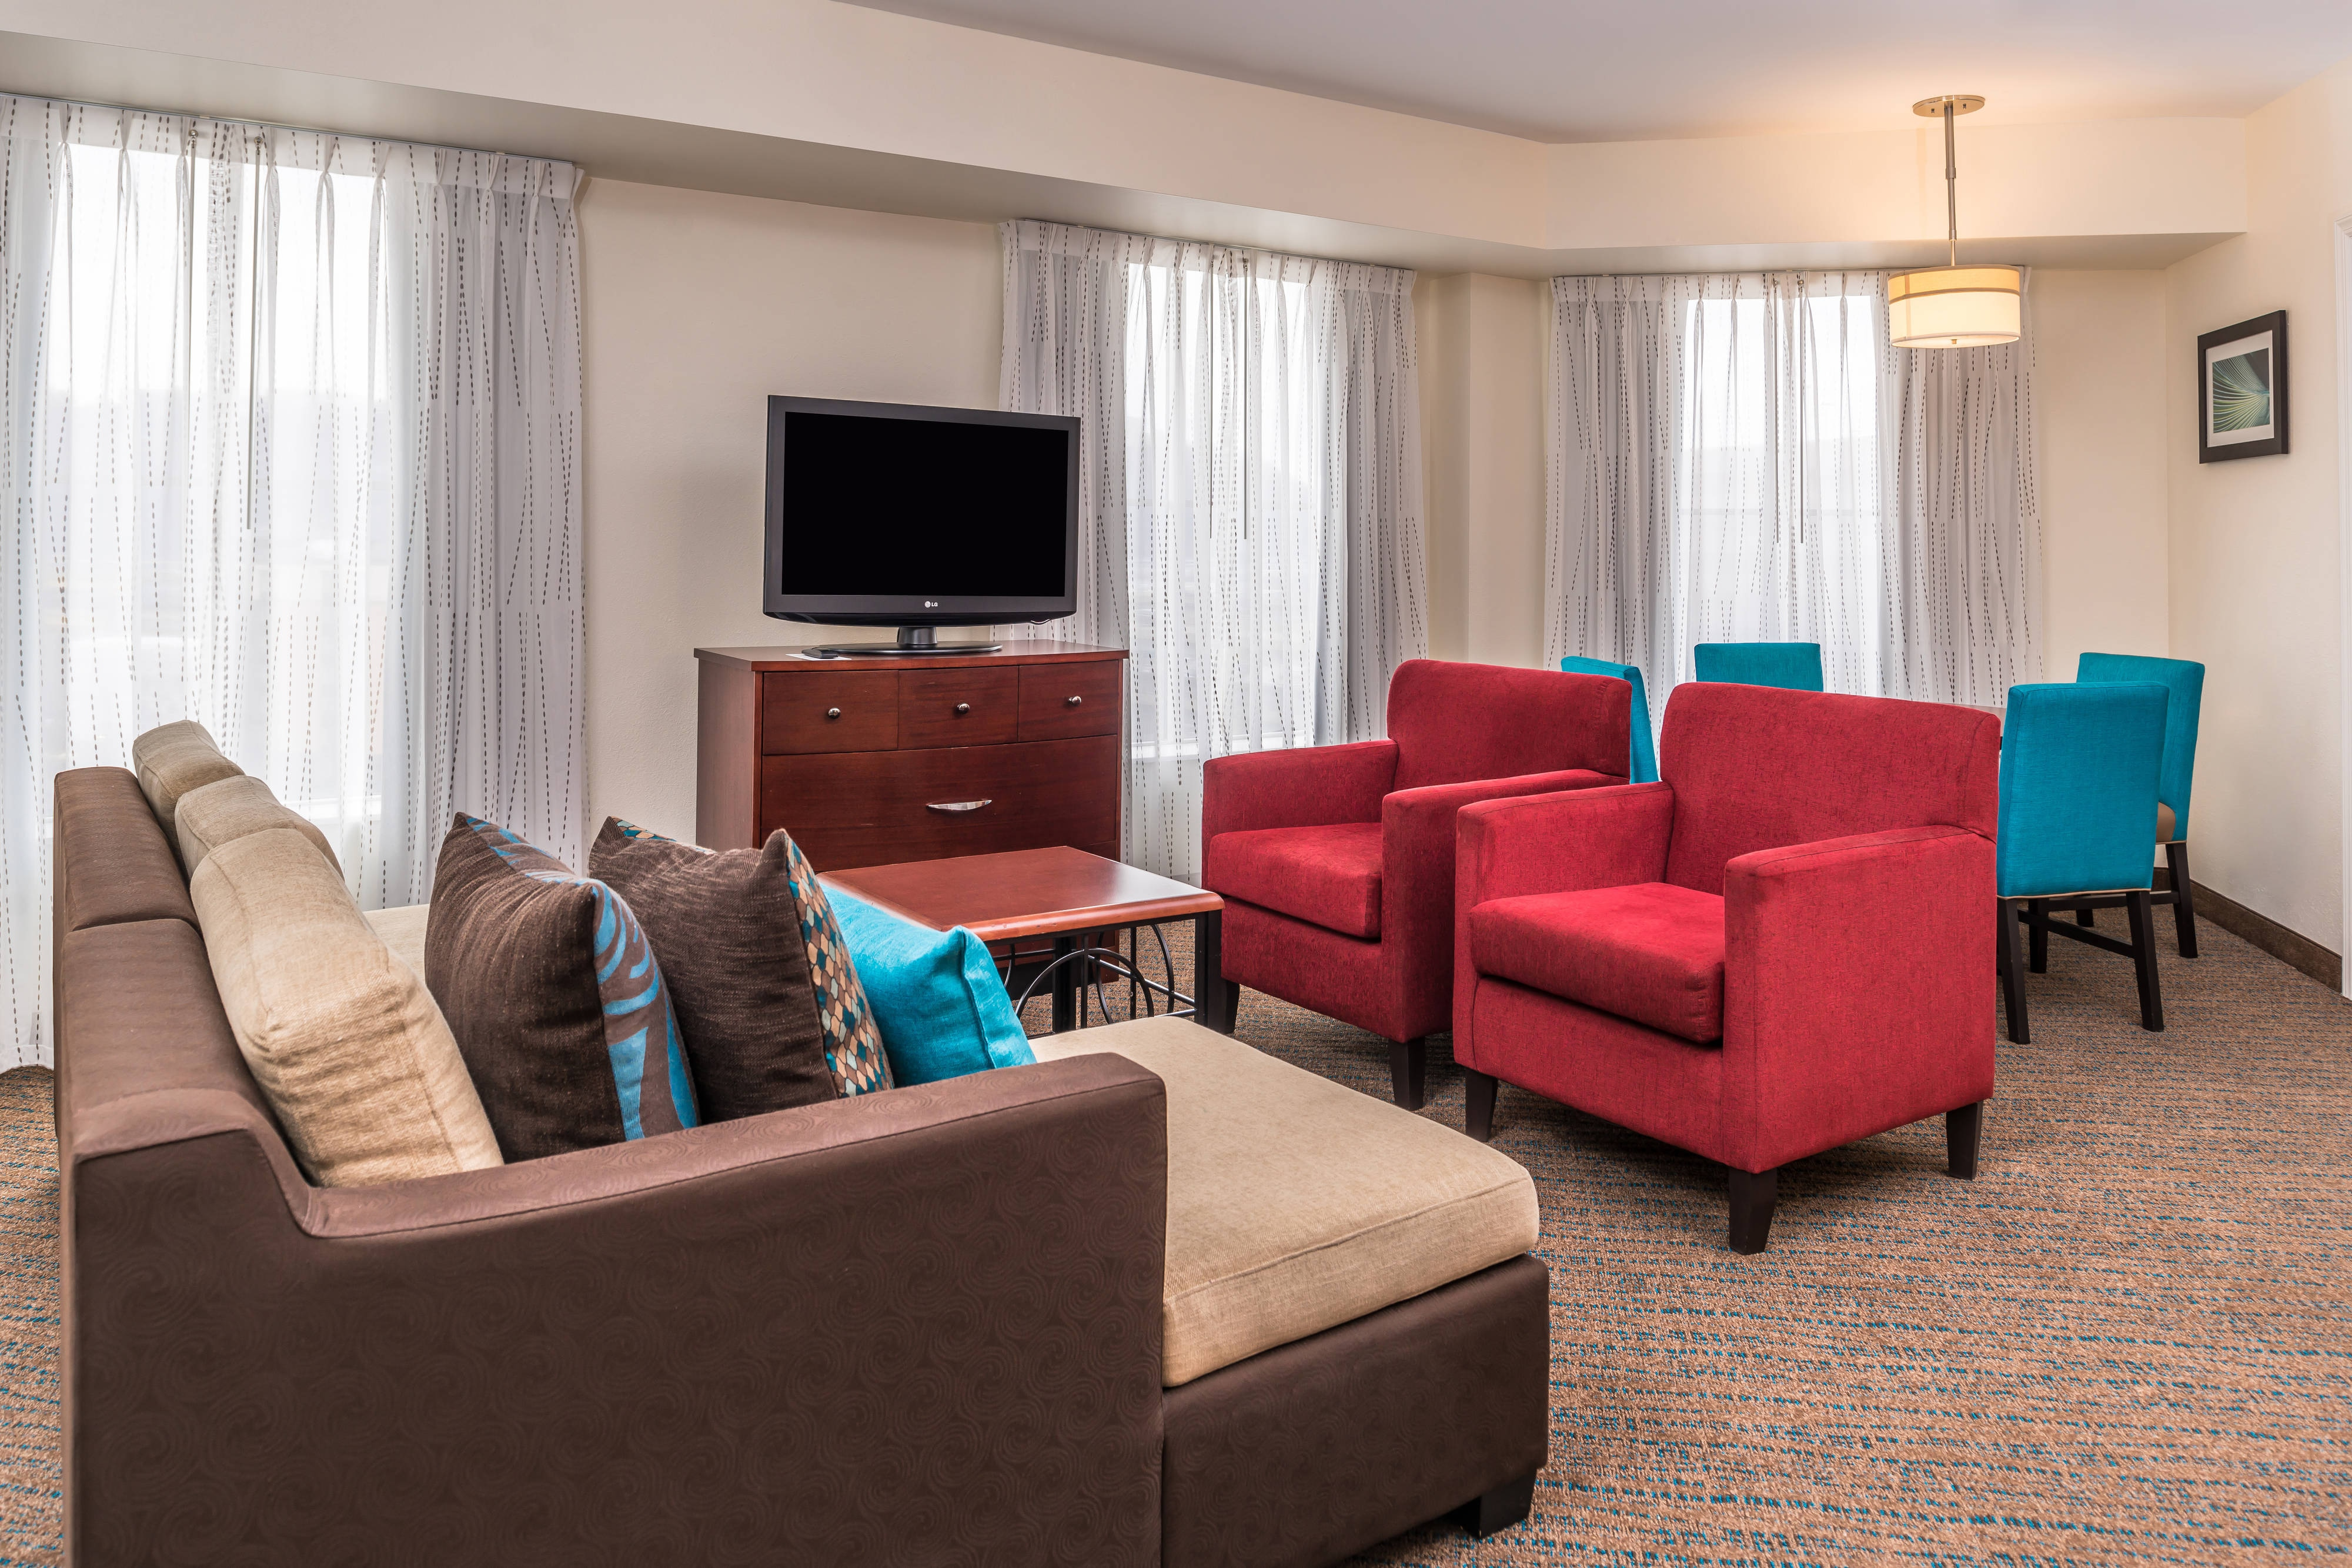 Residence inn pittsburgh north shore hotel amenities hotel room highlights for 2 bedroom suites in pittsburgh pa